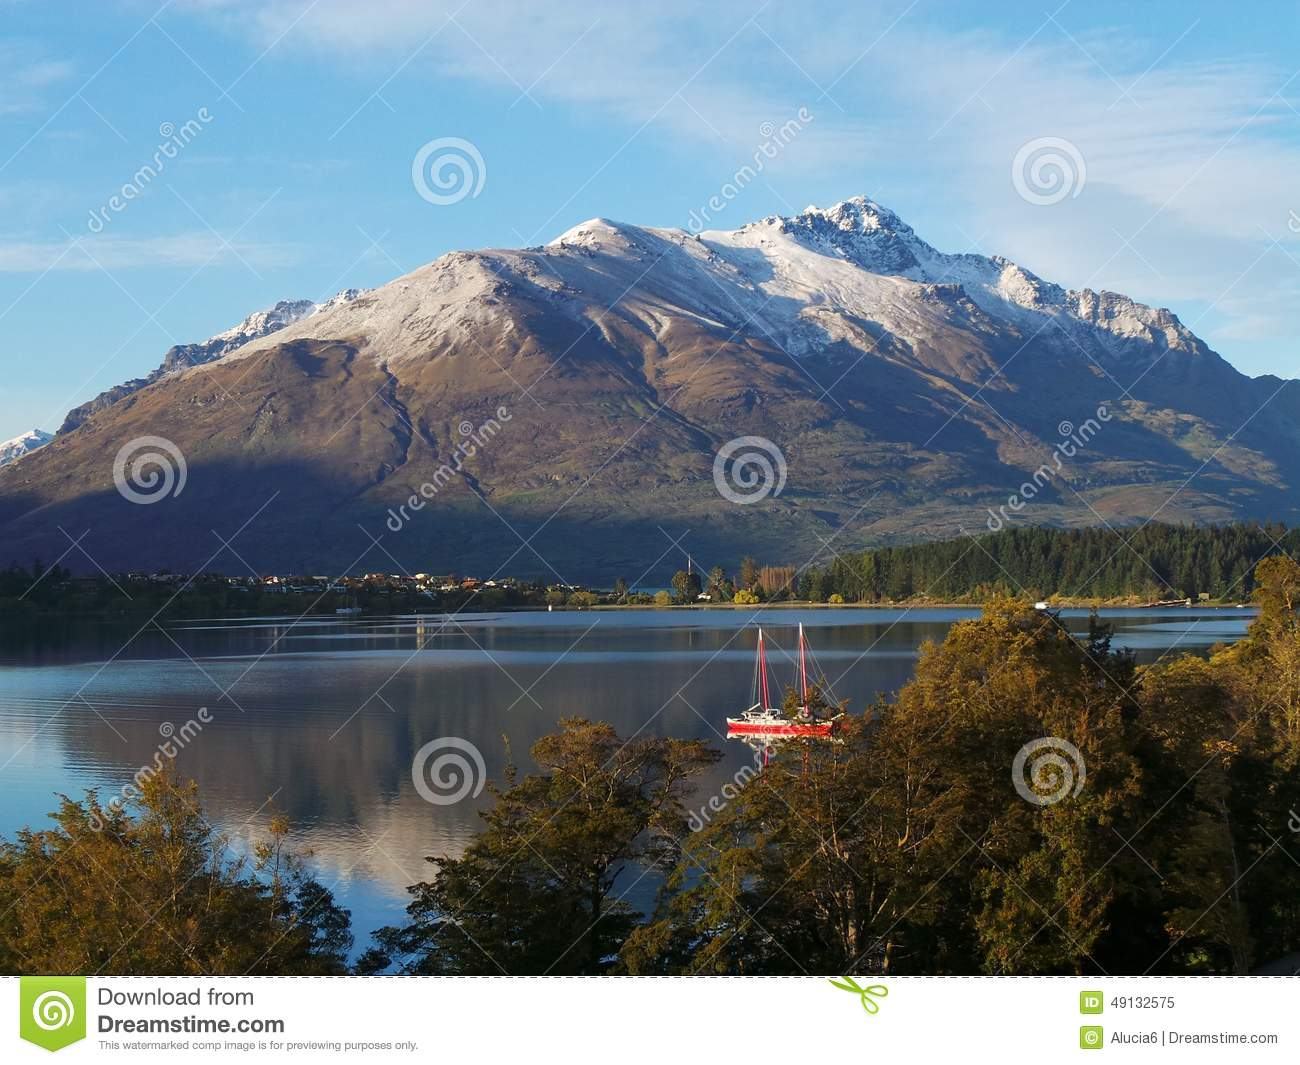 queenstown muslim 1 день назад the dinner comes as the supreme court considers legal challenges to trump's travel ban, which critics say unfairly targets some muslim-majority countries.